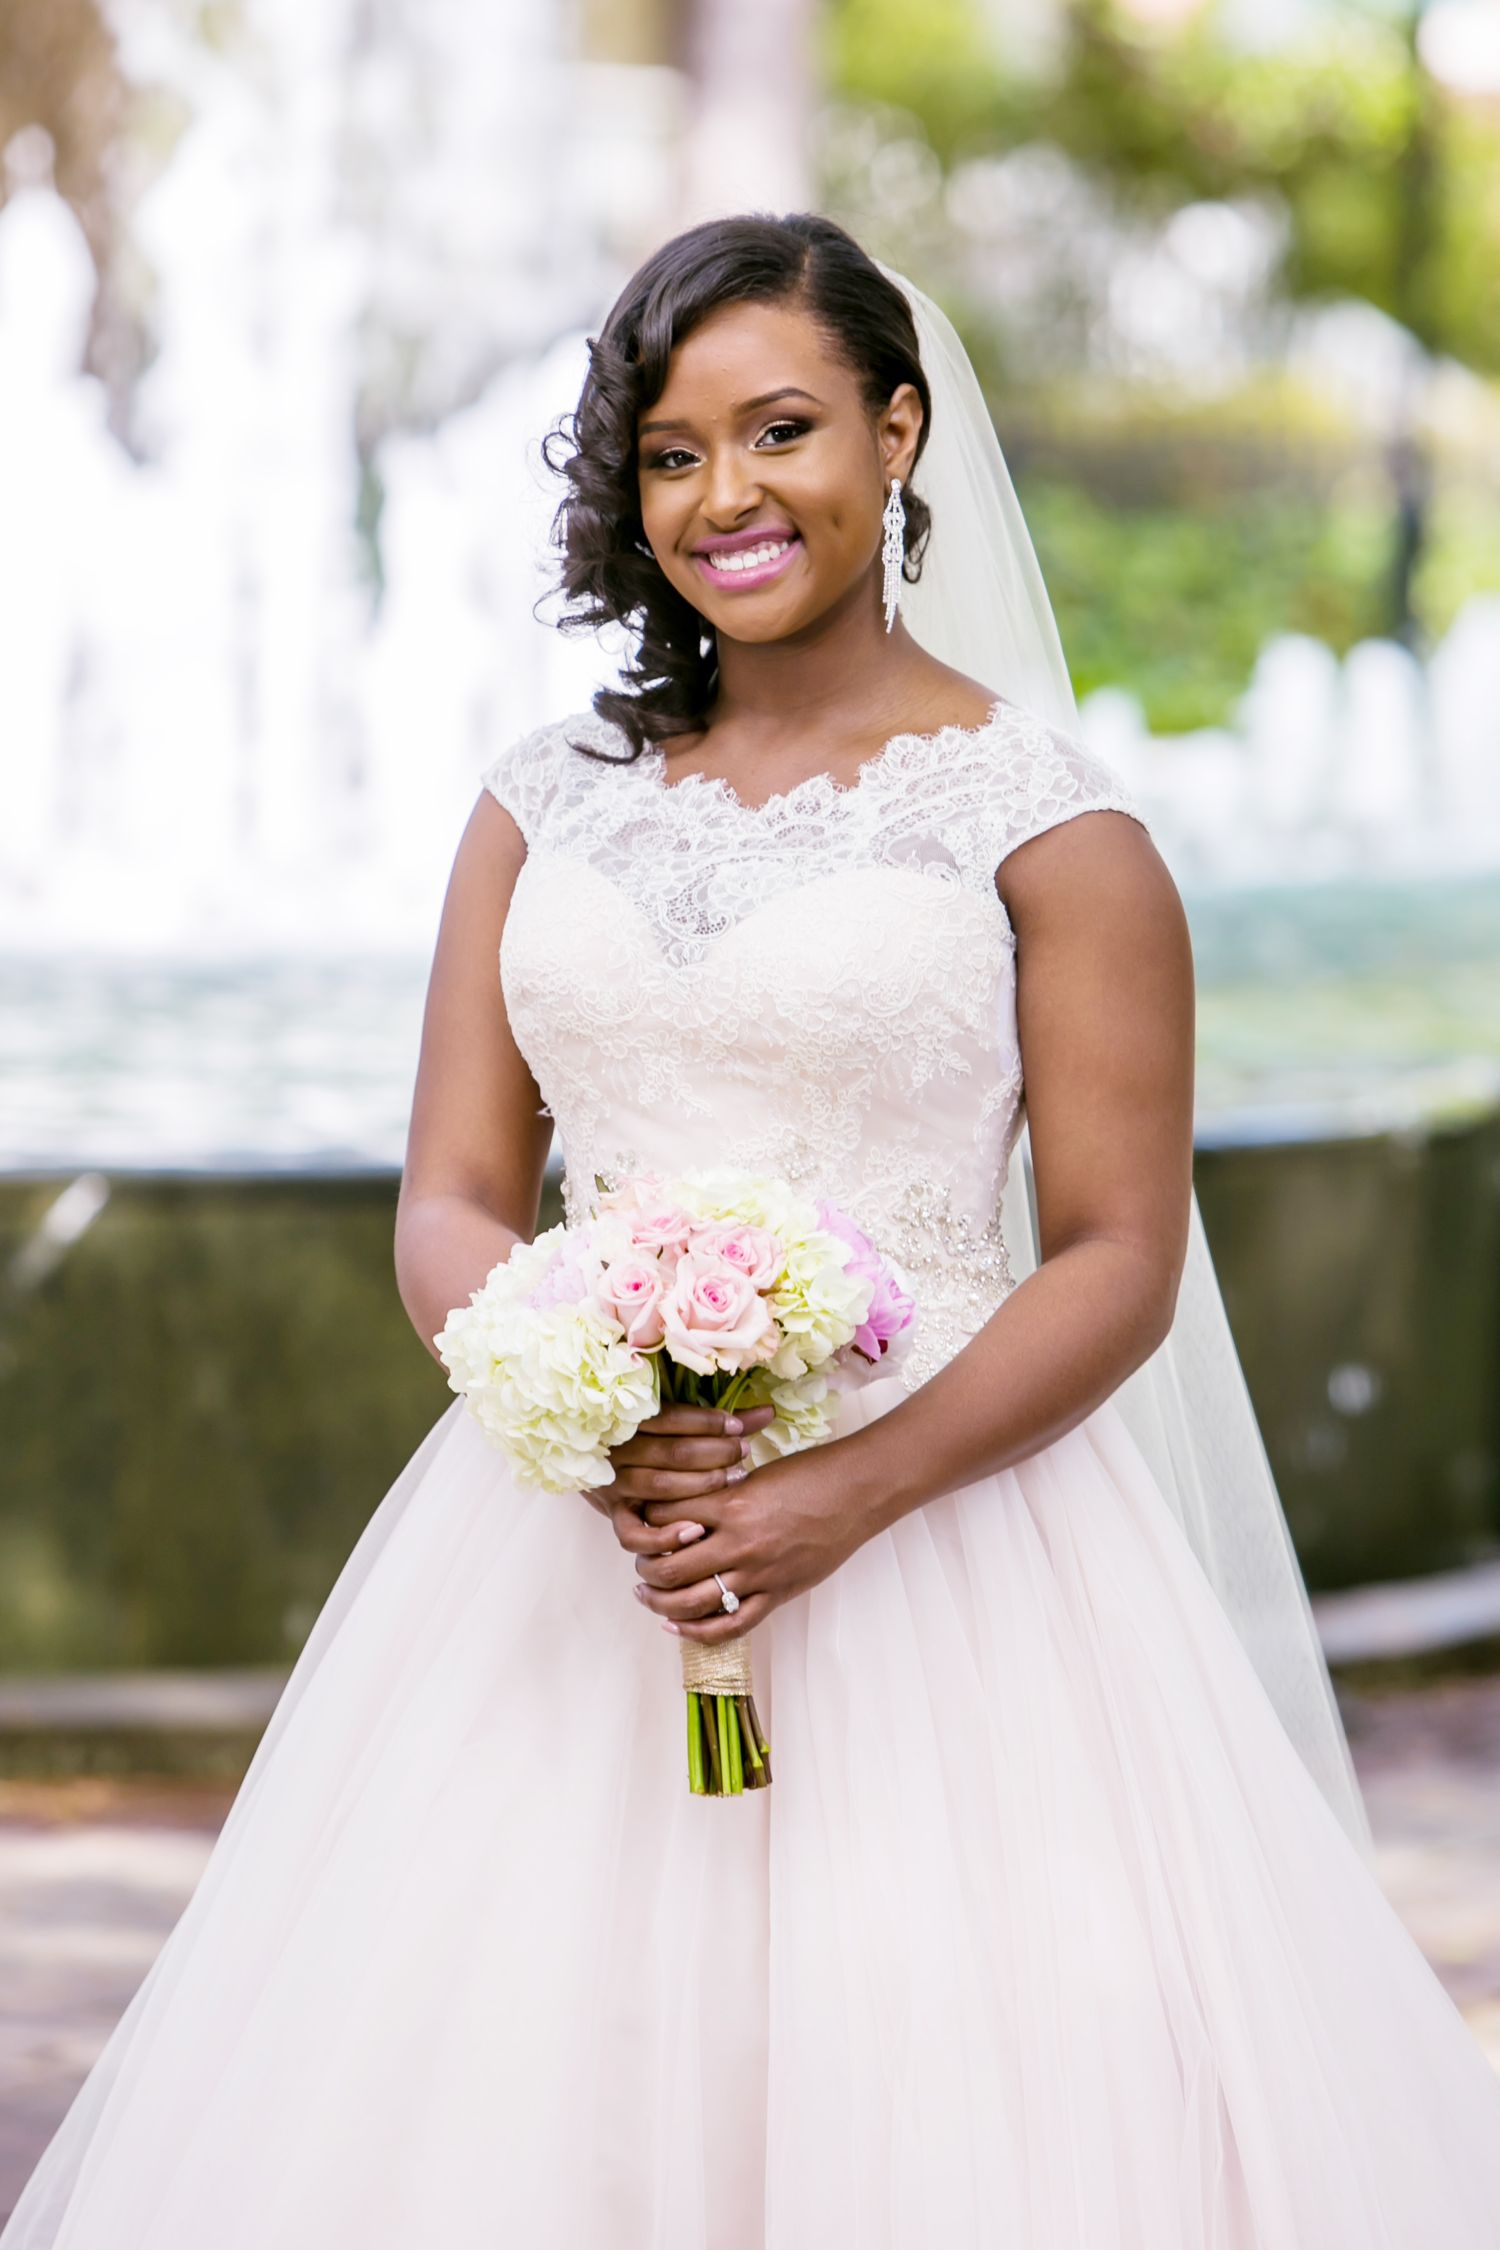 Bridal portrait at the Lace House and SC Governor's Mansion by Jeff Blake of Columbia Wedding Photos